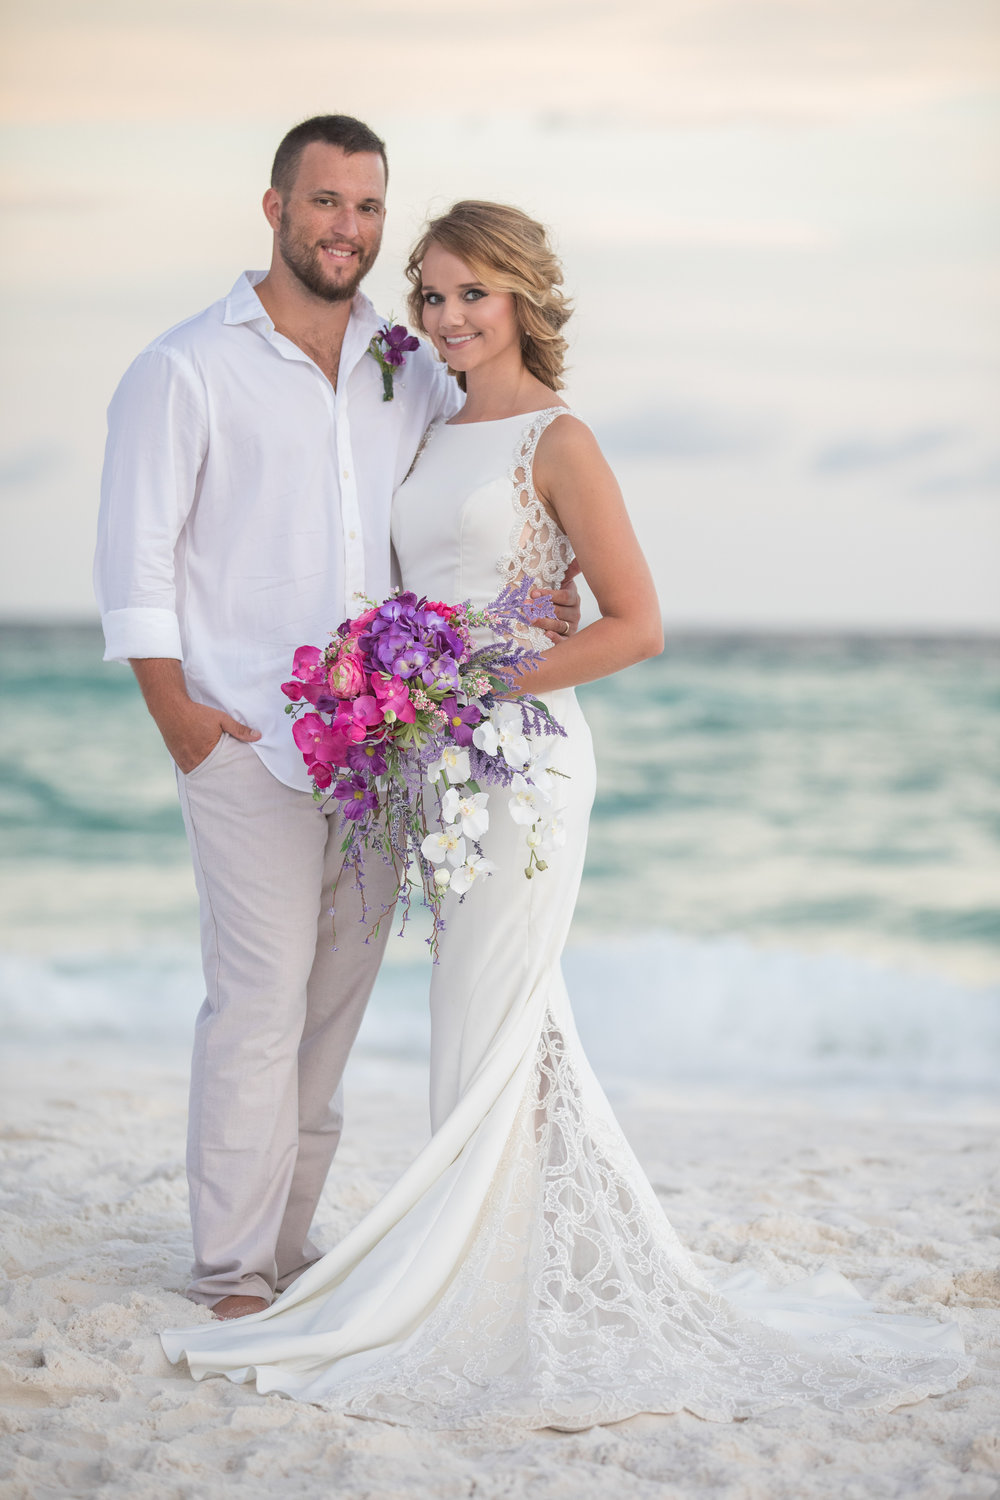 destin beach wedding package picture60_ (2).jpg